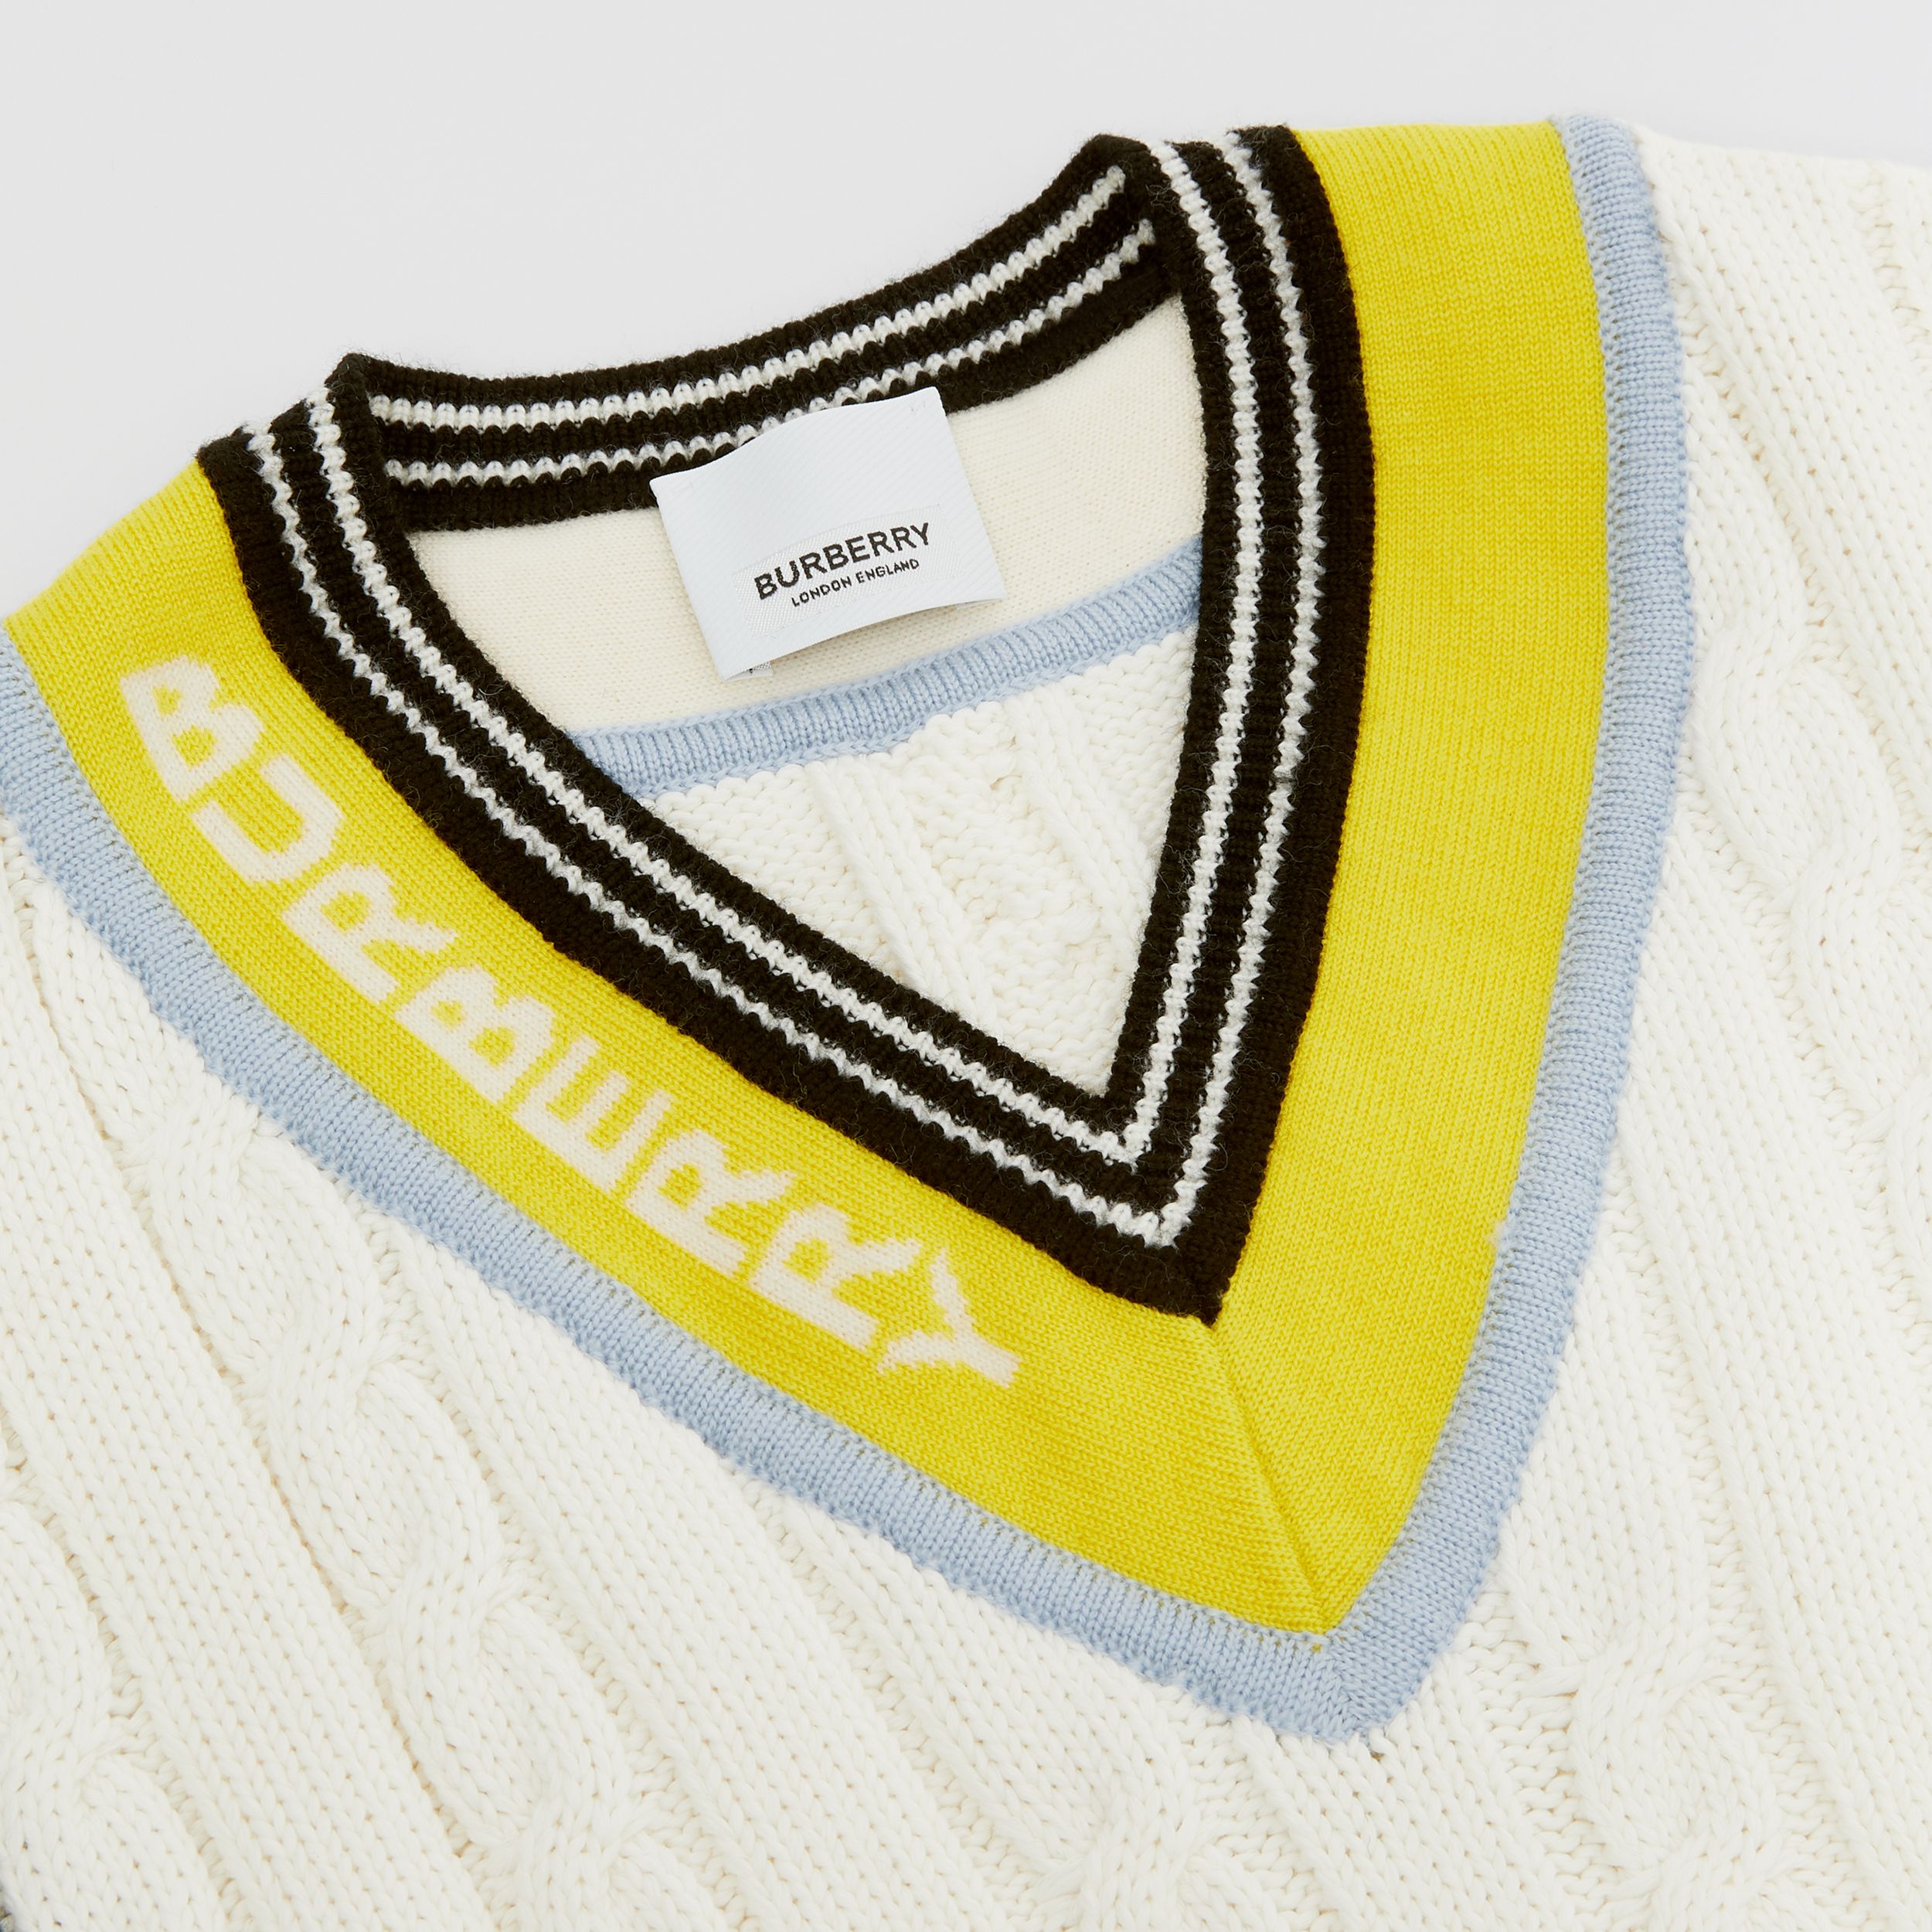 Logo Jacquard Cable Knit Cotton Cricket Sweater in White | Burberry - 2